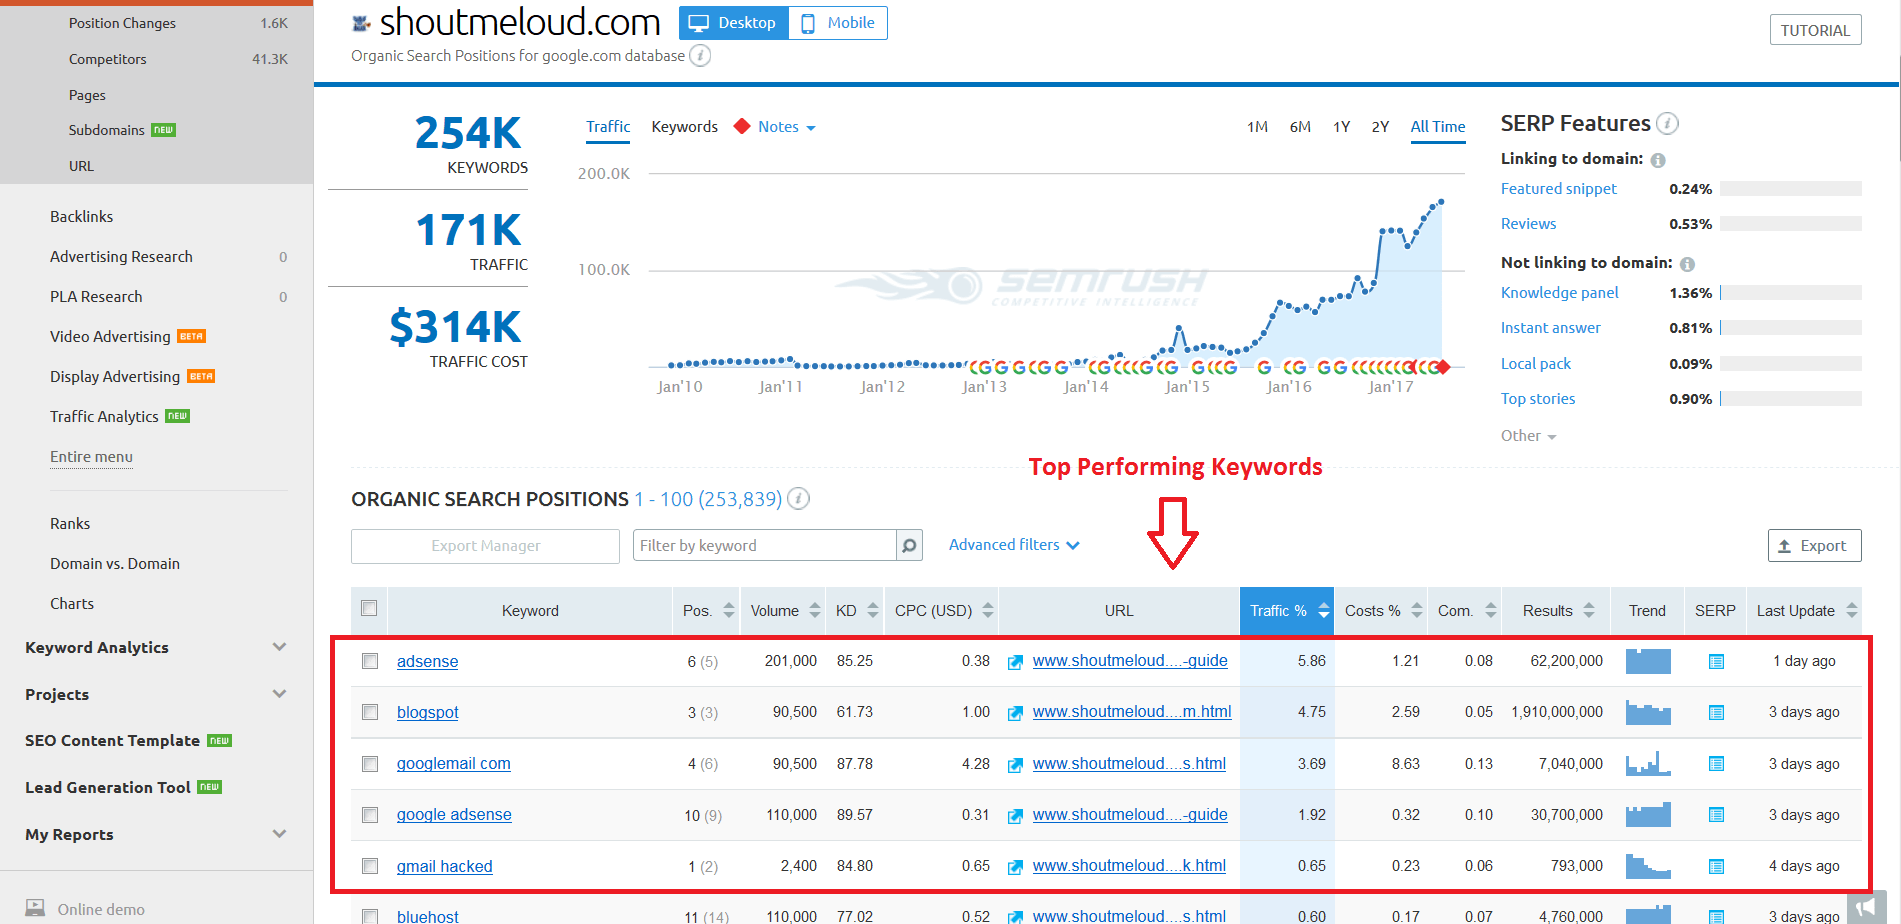 SEMrush Review - Top Performing Keywords